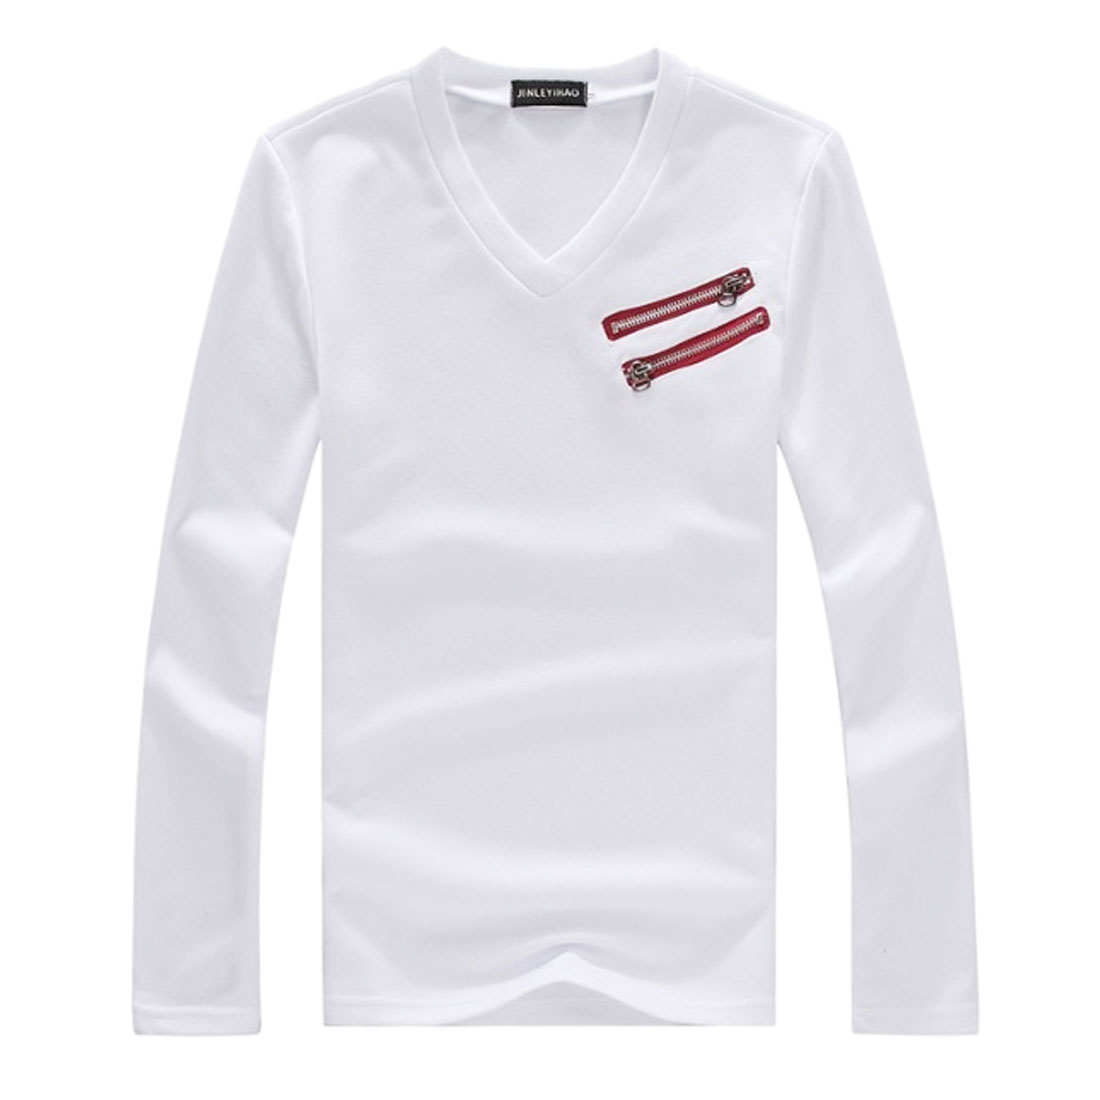 Stylish White V Neckline Long Sleeve Slant Zipper Decor Front Shirt for Man S